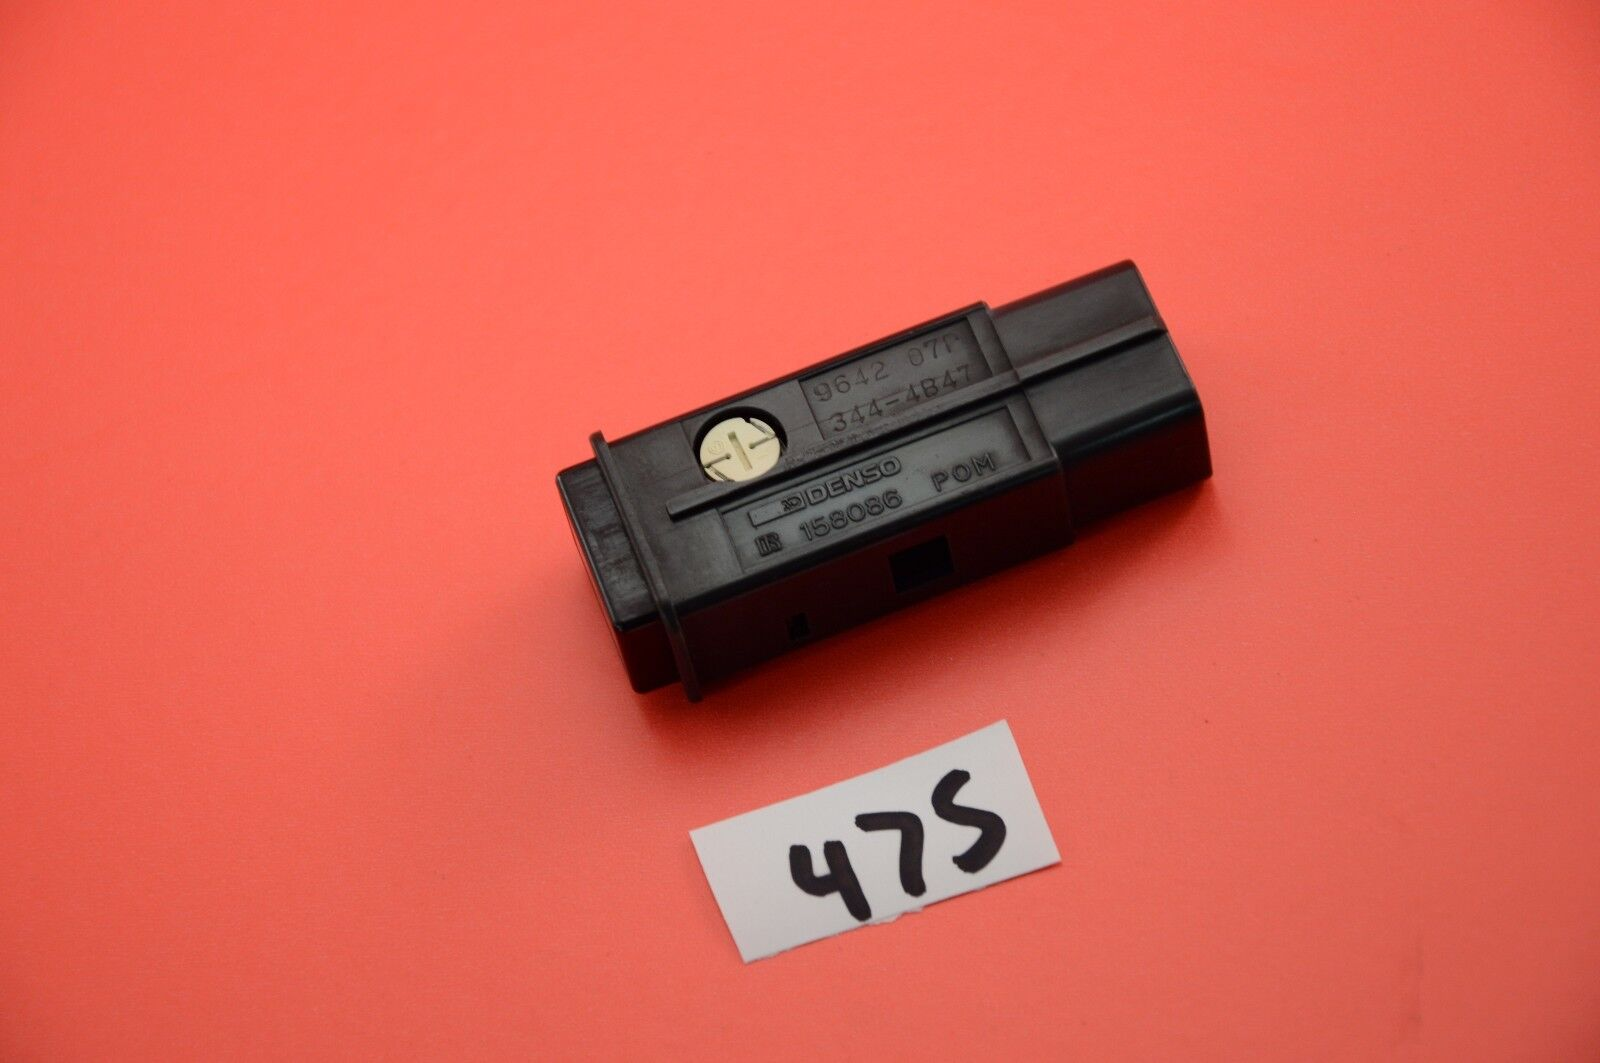 Used Toyota 4runner Switches And Controls For Sale 85 Fuse Box 475 1989 2000 Pickup Tacoma Tested Ac Factory Oem Denso Switch 158086